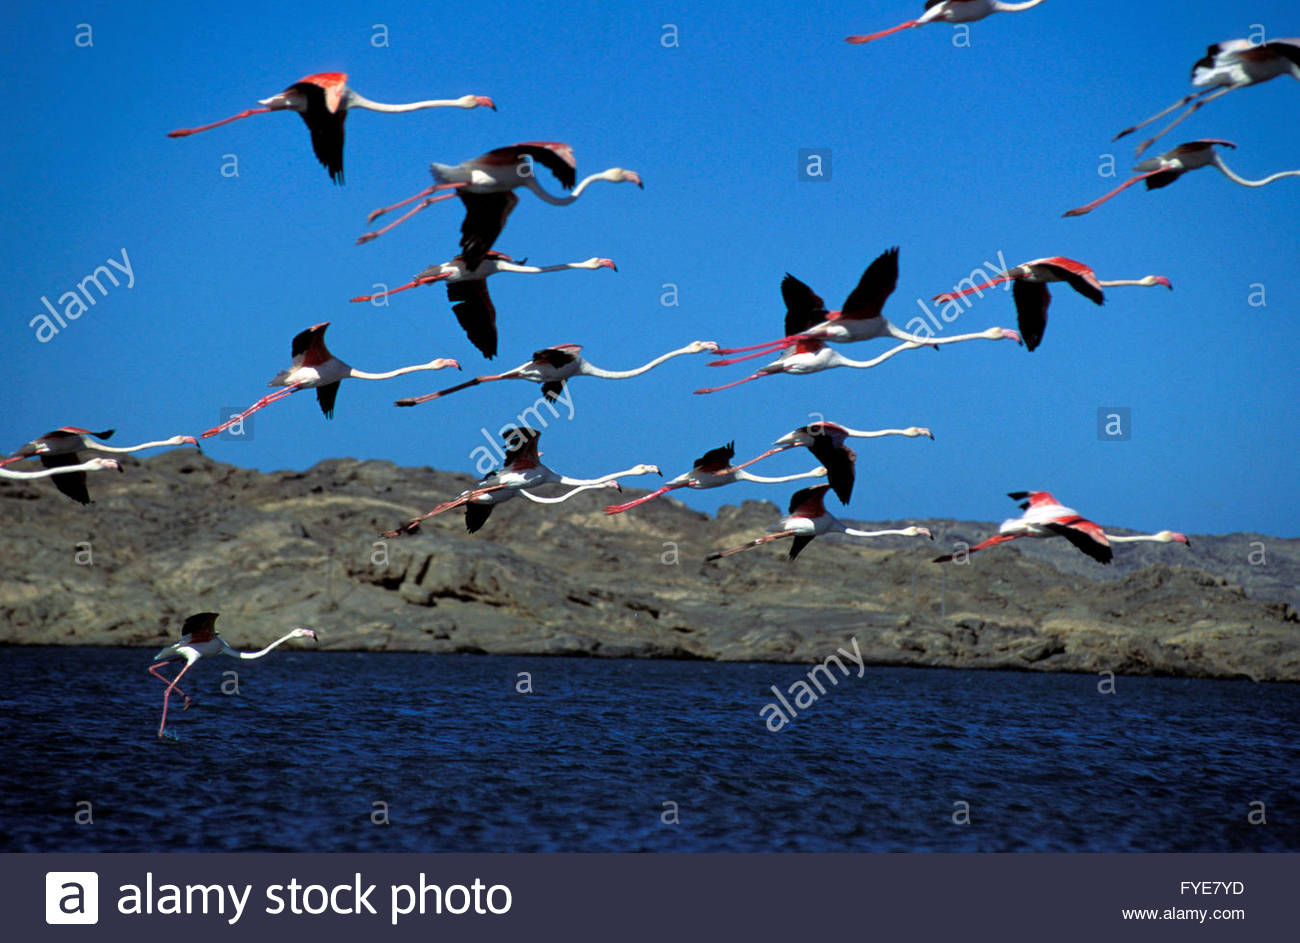 Flamingoes in the Namib desert Namibia. - Stock Image